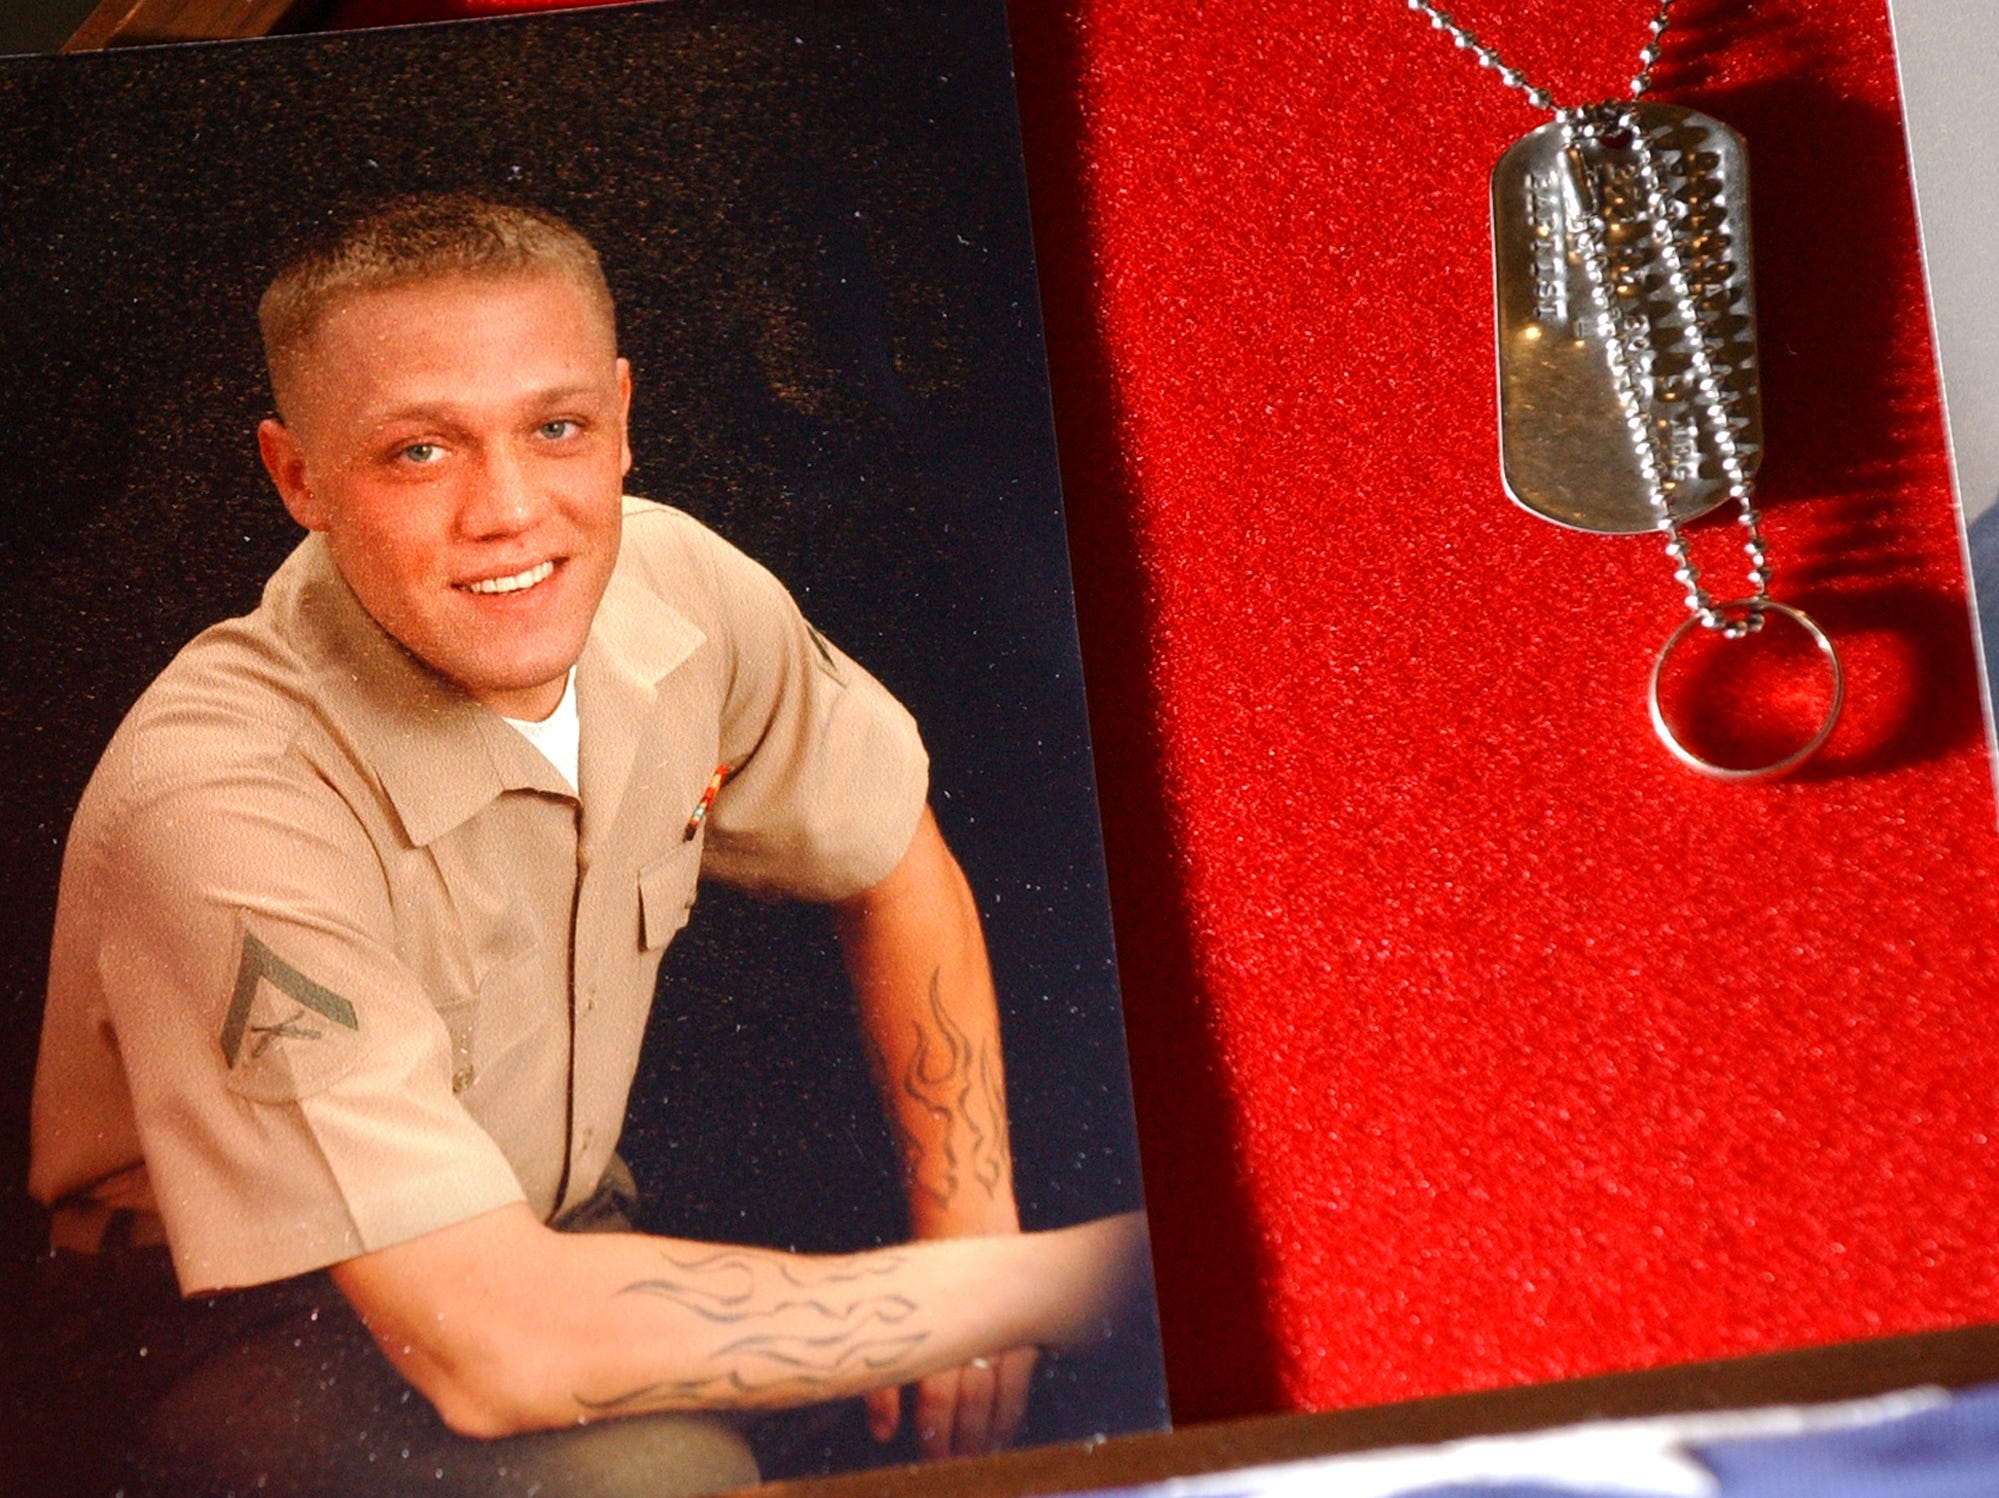 U.S. Marine Lance Cpl. Jeffery S. Blanton, 23, of Georgia, died Dec. 12, 2004, fighting in Iraq's Al Anbar province. He was assigned to the 1st Battalion, 3rd Marine Regiment, 3rd Marine Division. His wife, Amber, is from Conewago Township. Here, his dog tags and wedding ring hang next to his photo. Although wounded the month before his death, Blanton longed to return to his fellow Marines, his wife said. He returned to duty two days before his death